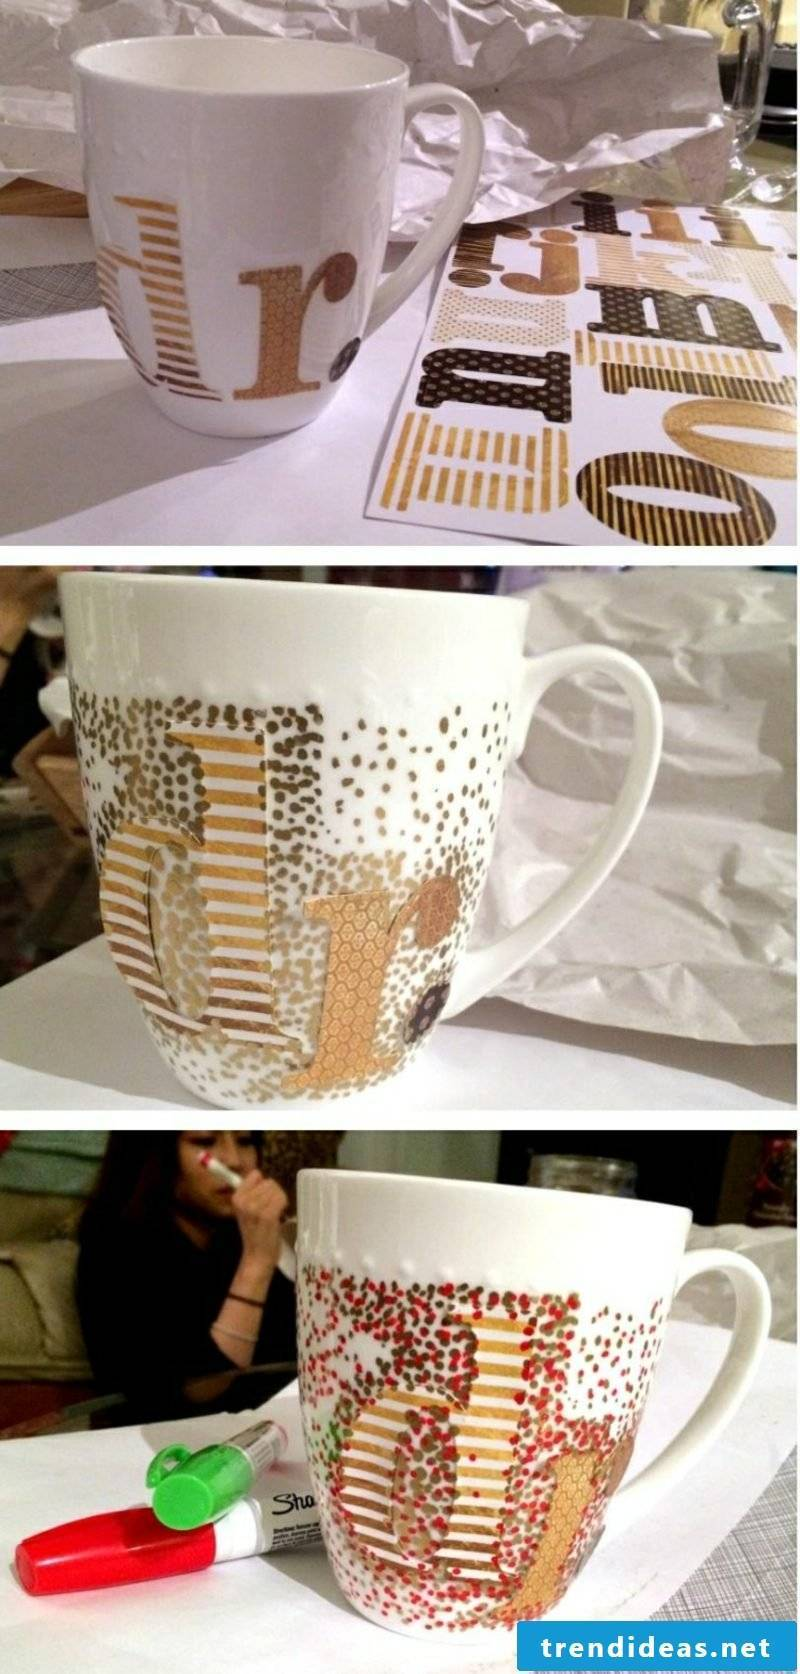 Make your own cup gorgeous gift idea